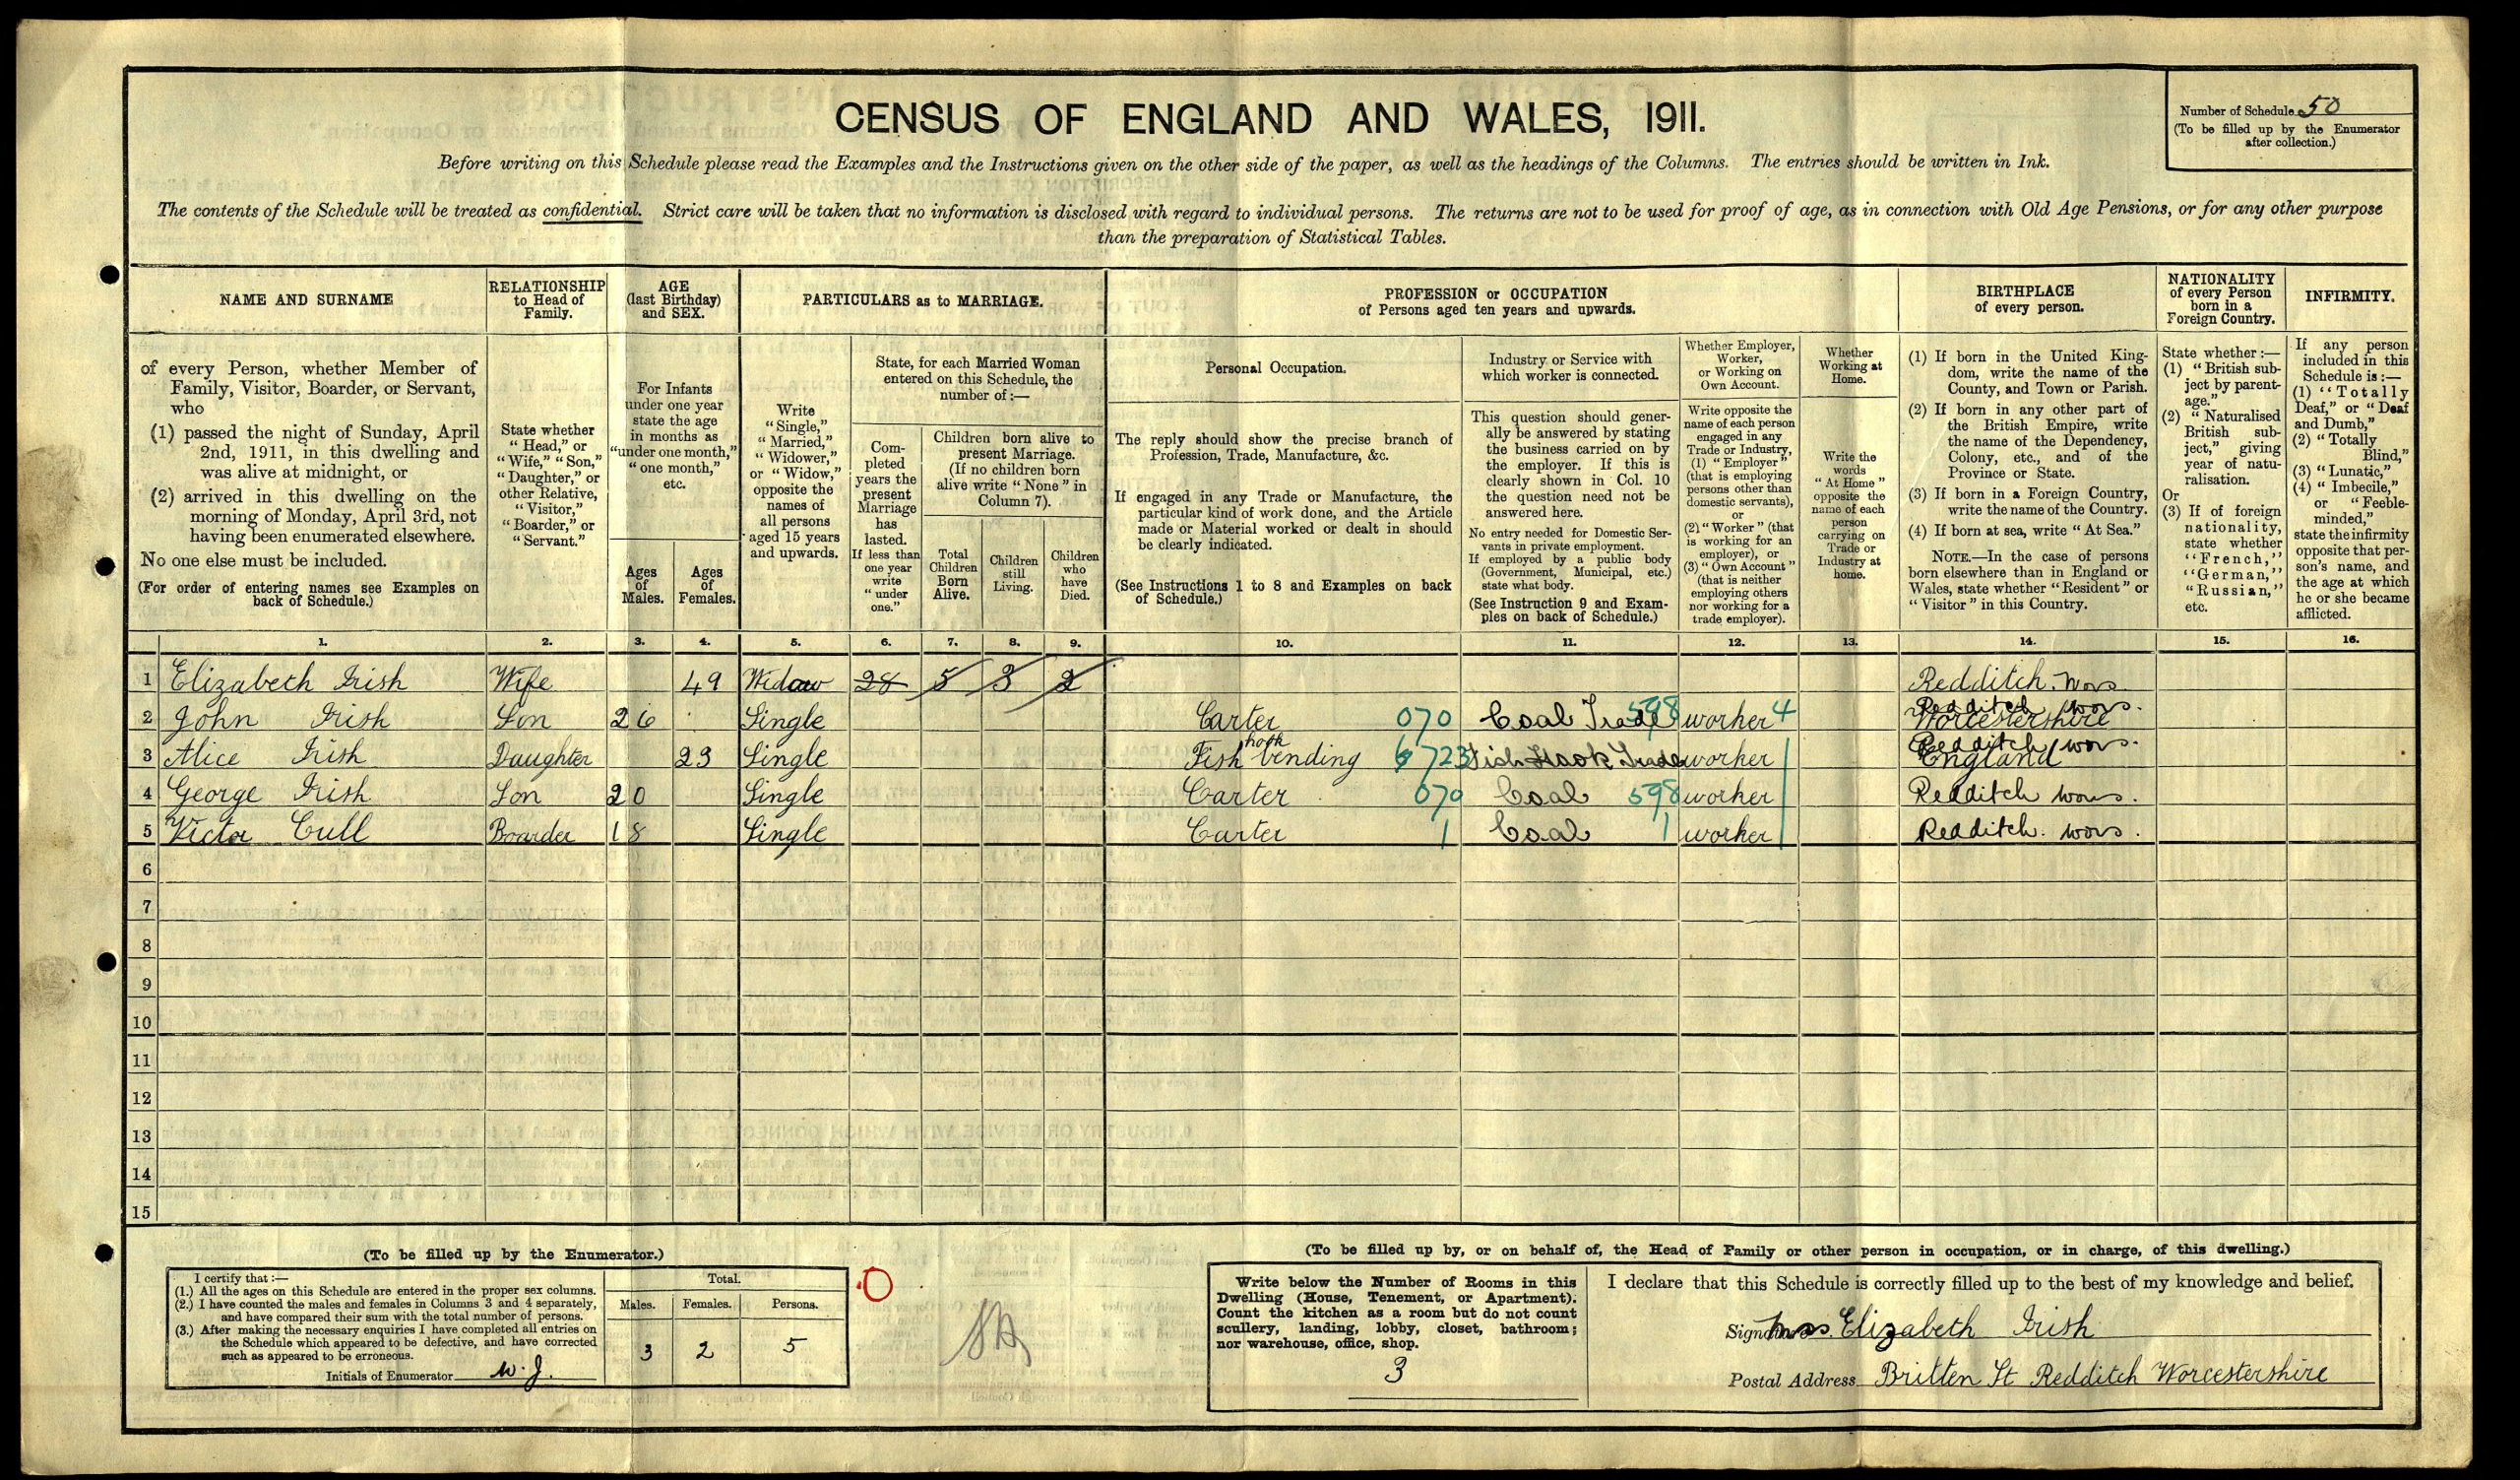 1911 census return for George Irish © Crown copyright courtesy of The National Archives